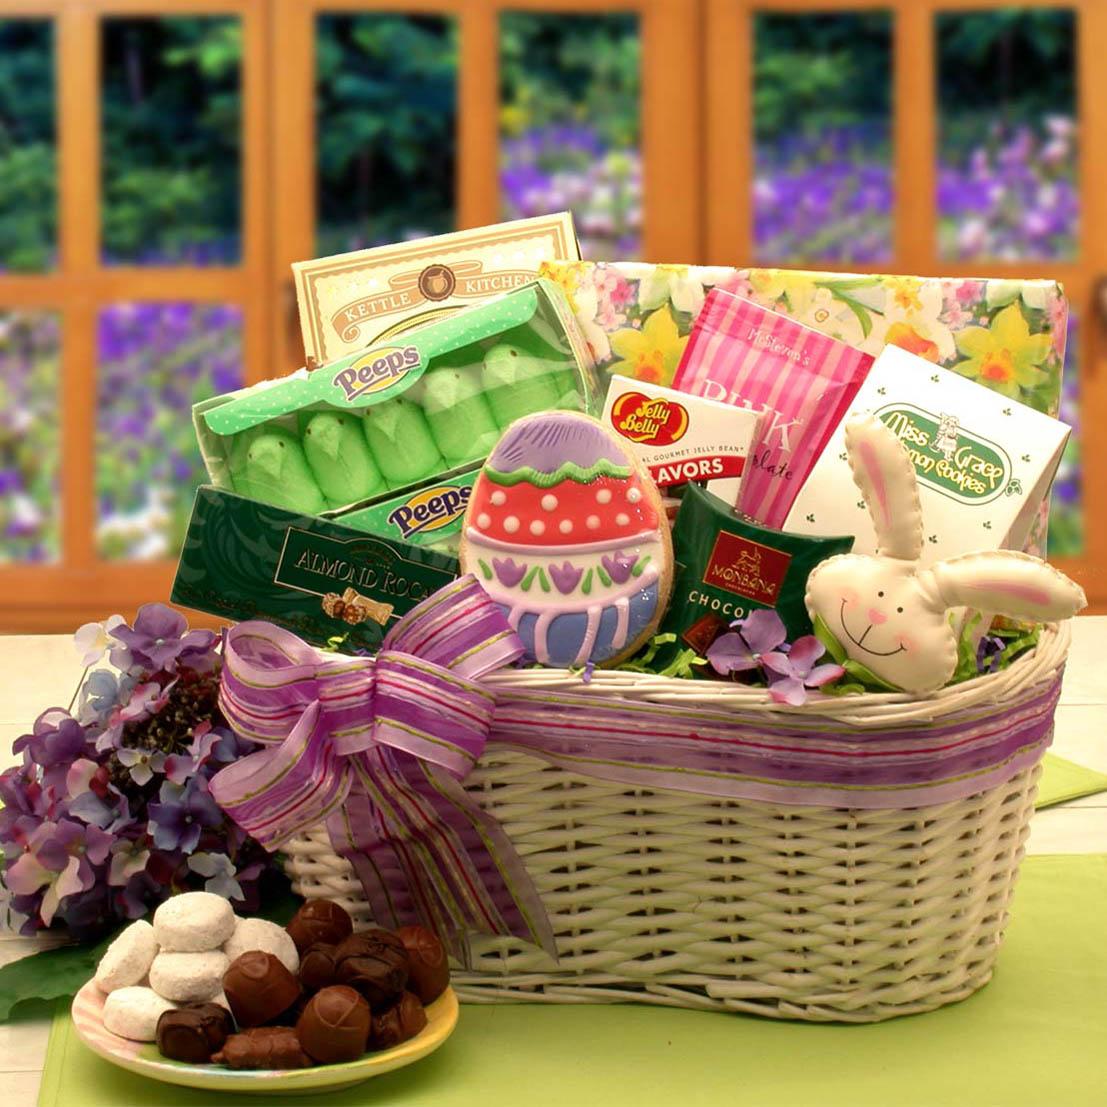 Cute Easter Basket Toys From American Plastic Toys. #American Plastic Toys